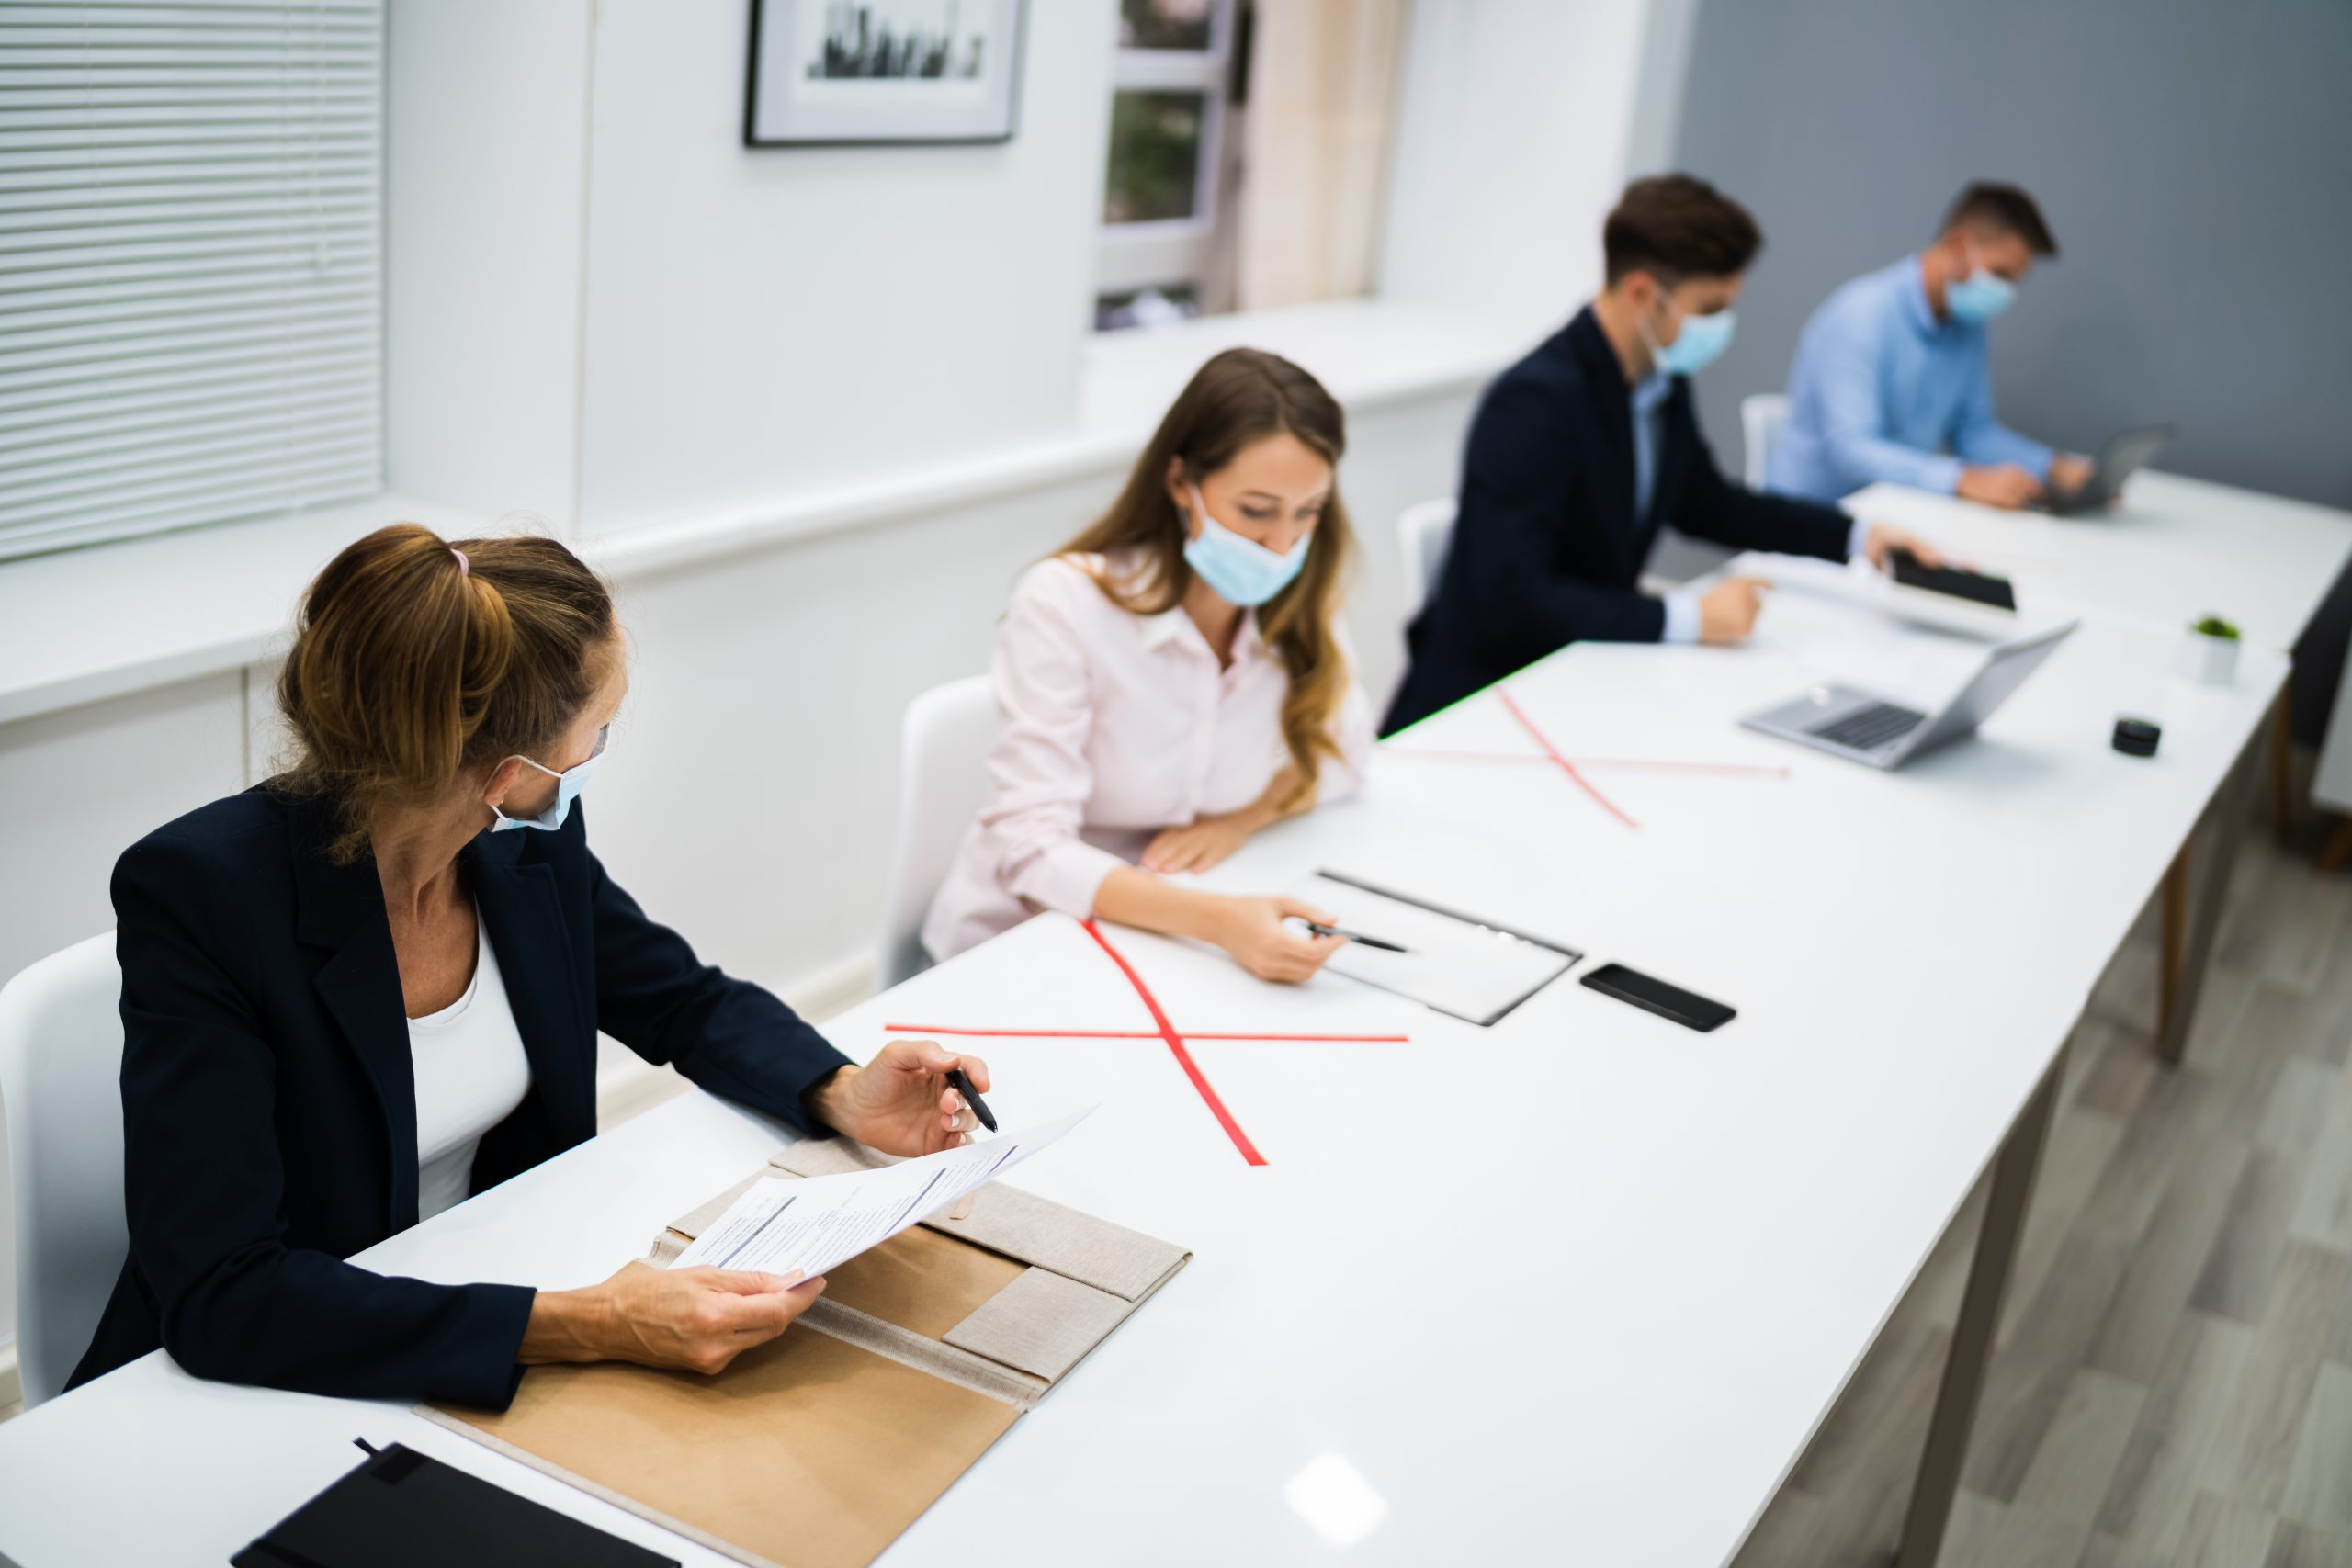 Caring For Your Employees During The COVID-19 Crisis